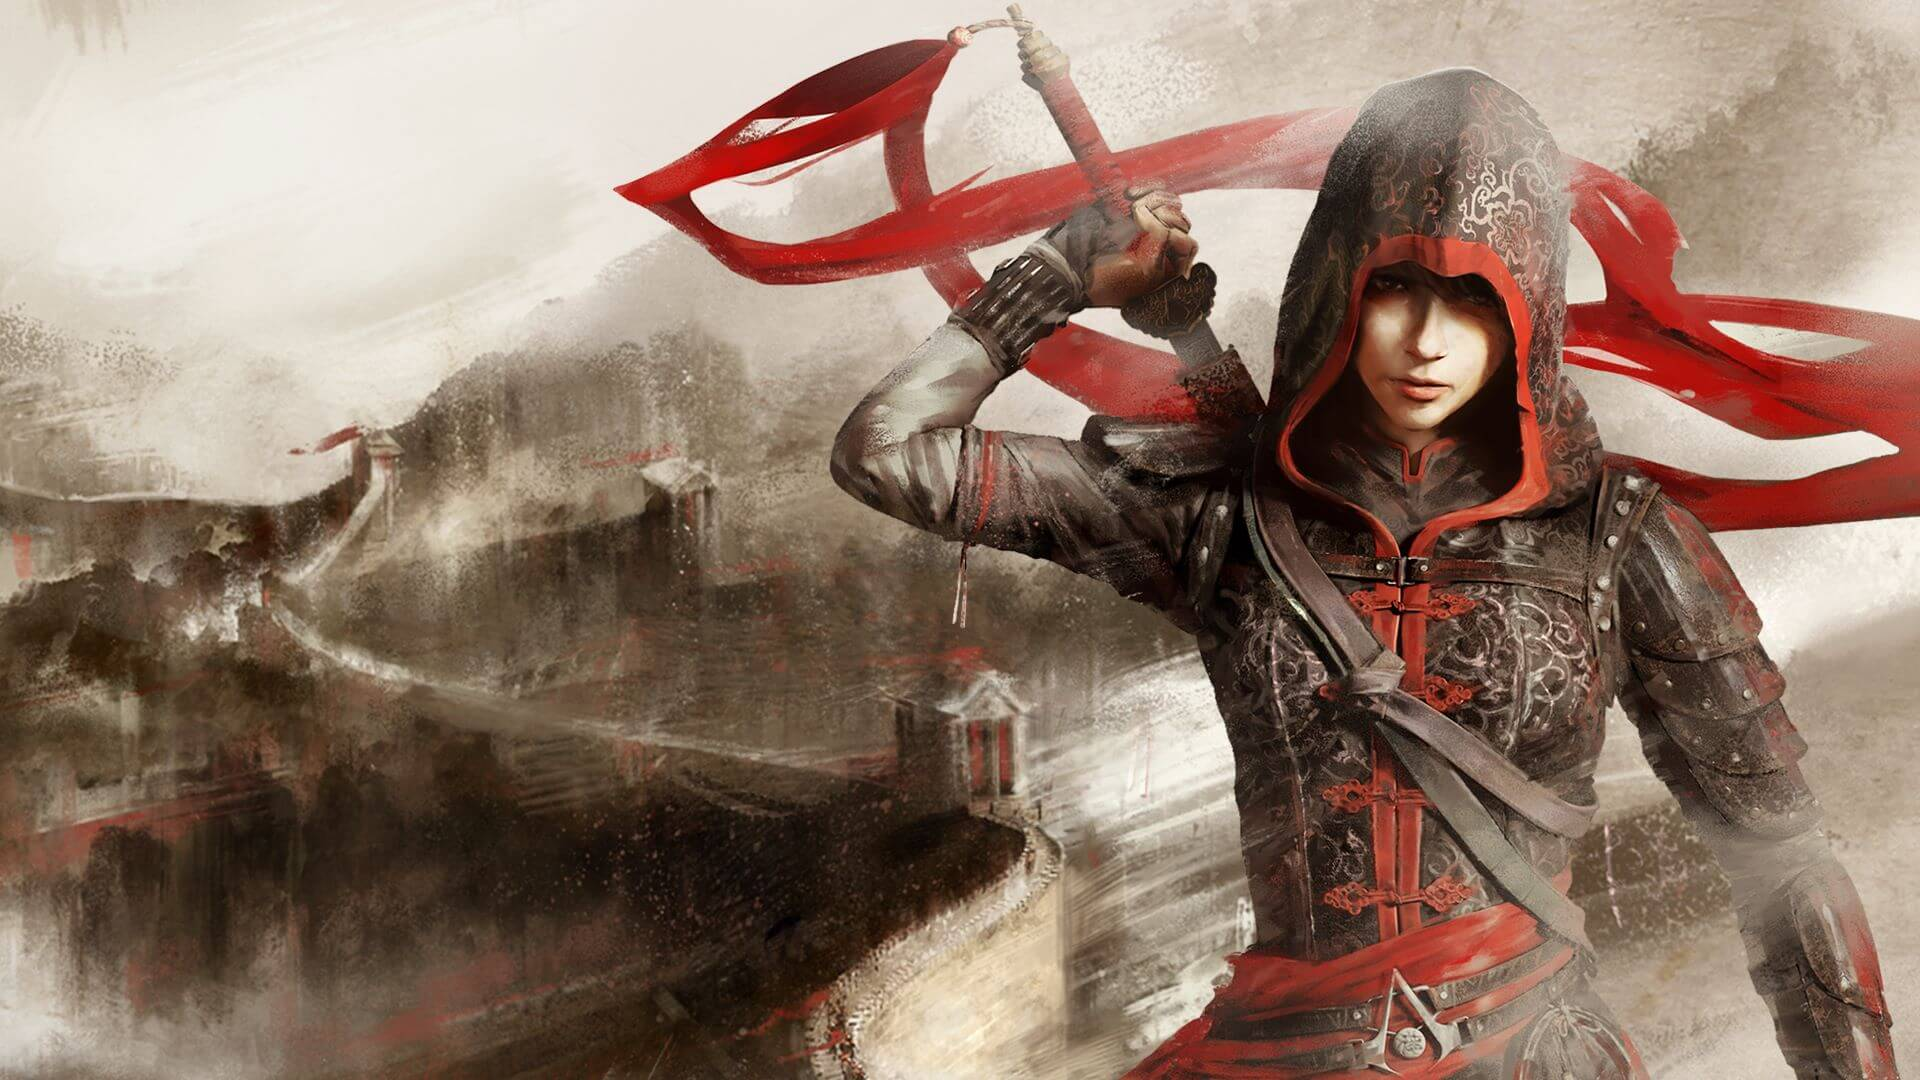 Assassin's Creed Chronicles: China is currently available for free on UPLAY